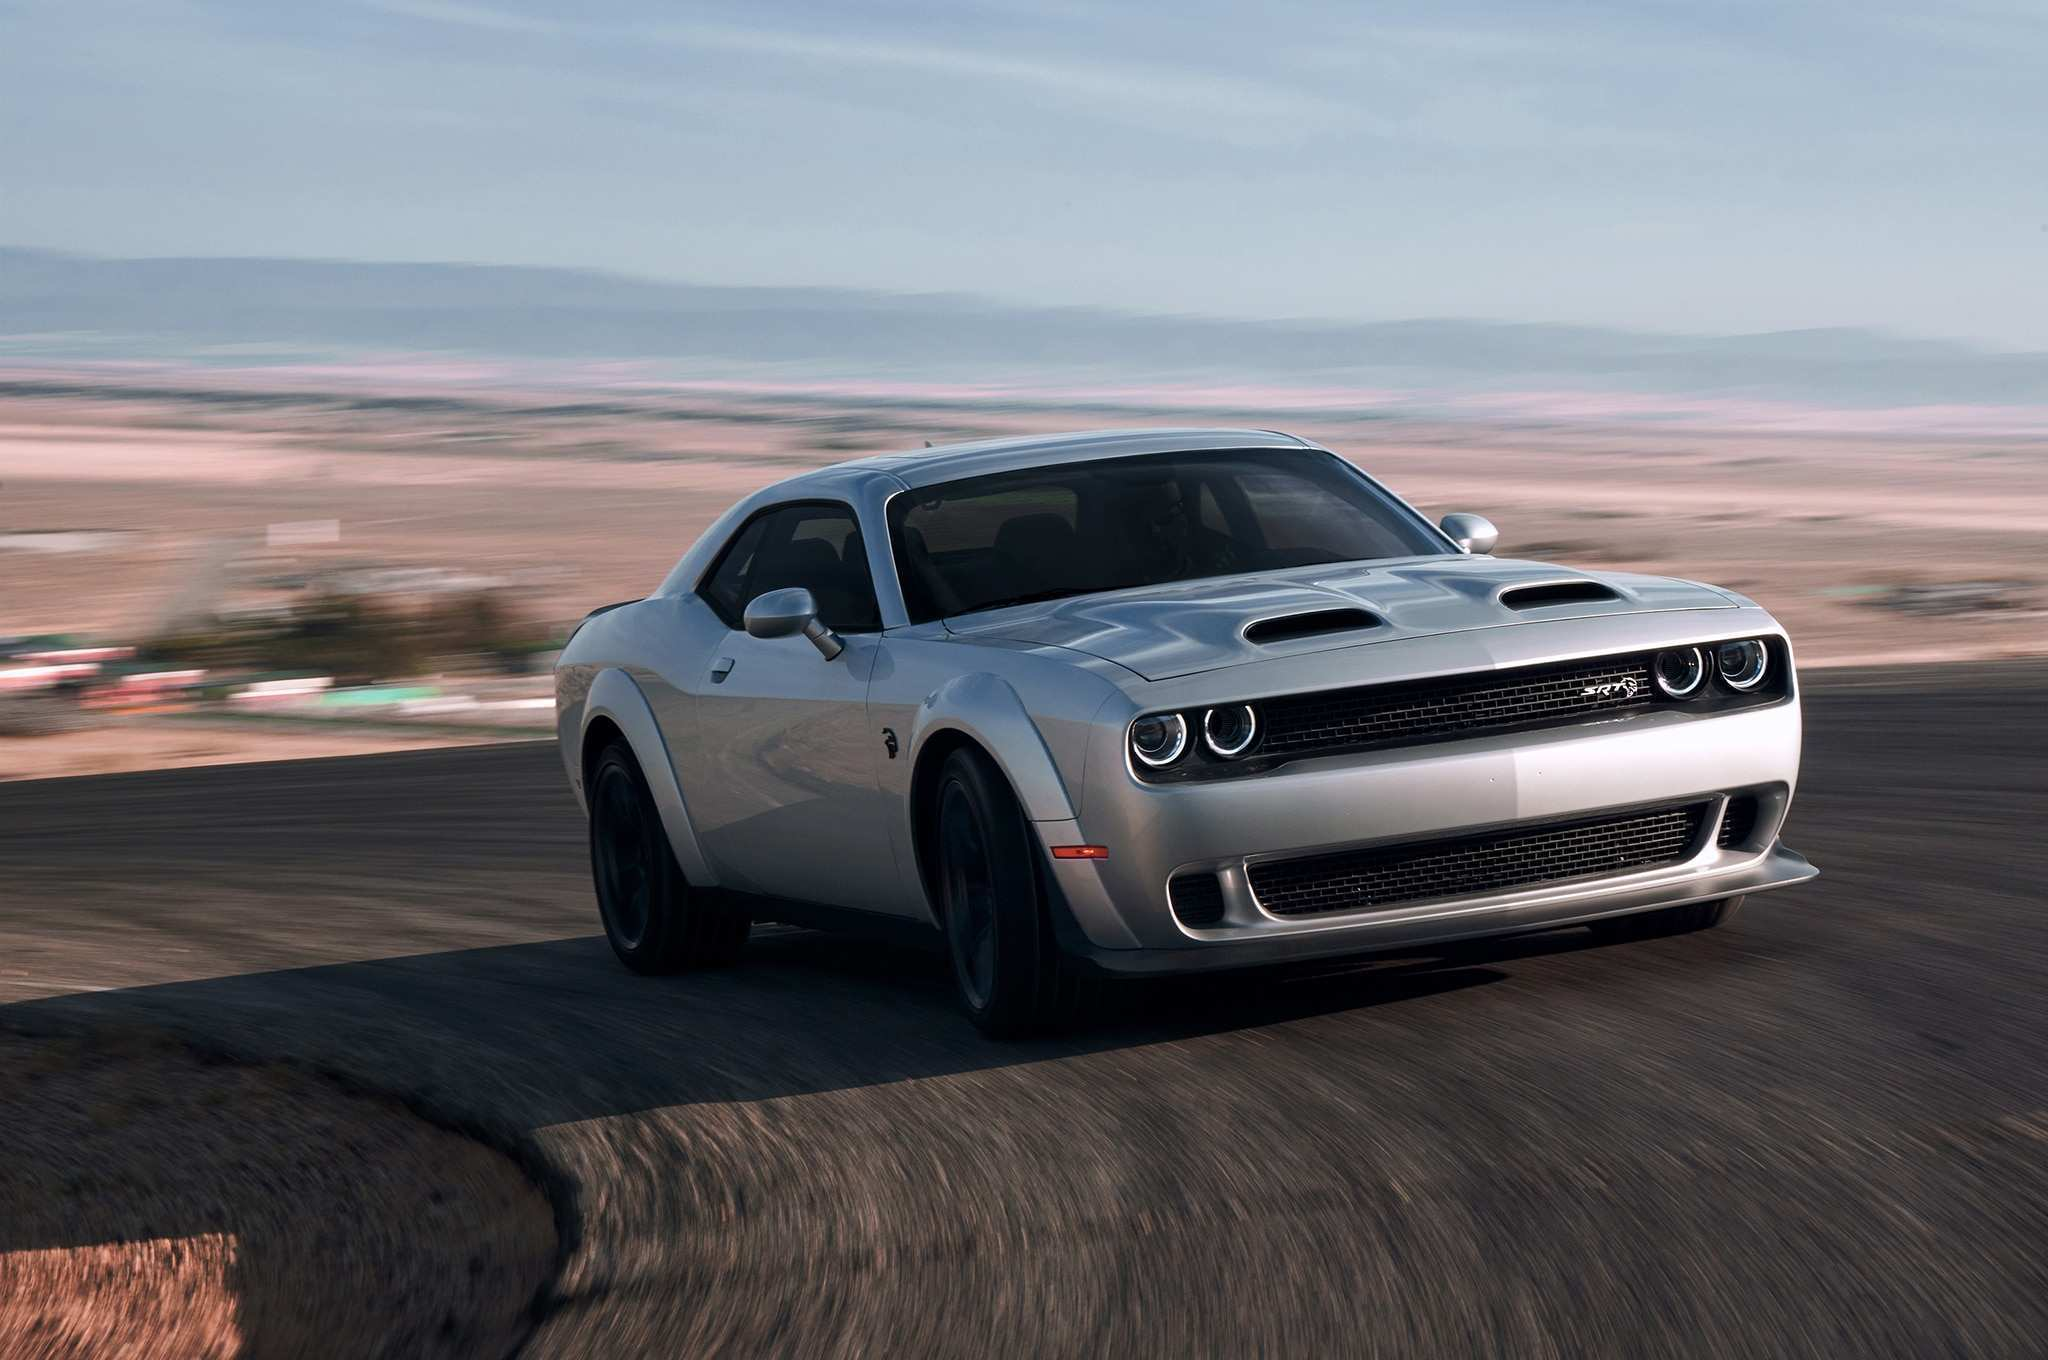 77 All New 2019 Dodge Hellcat Widebody Ratings for 2019 Dodge Hellcat Widebody